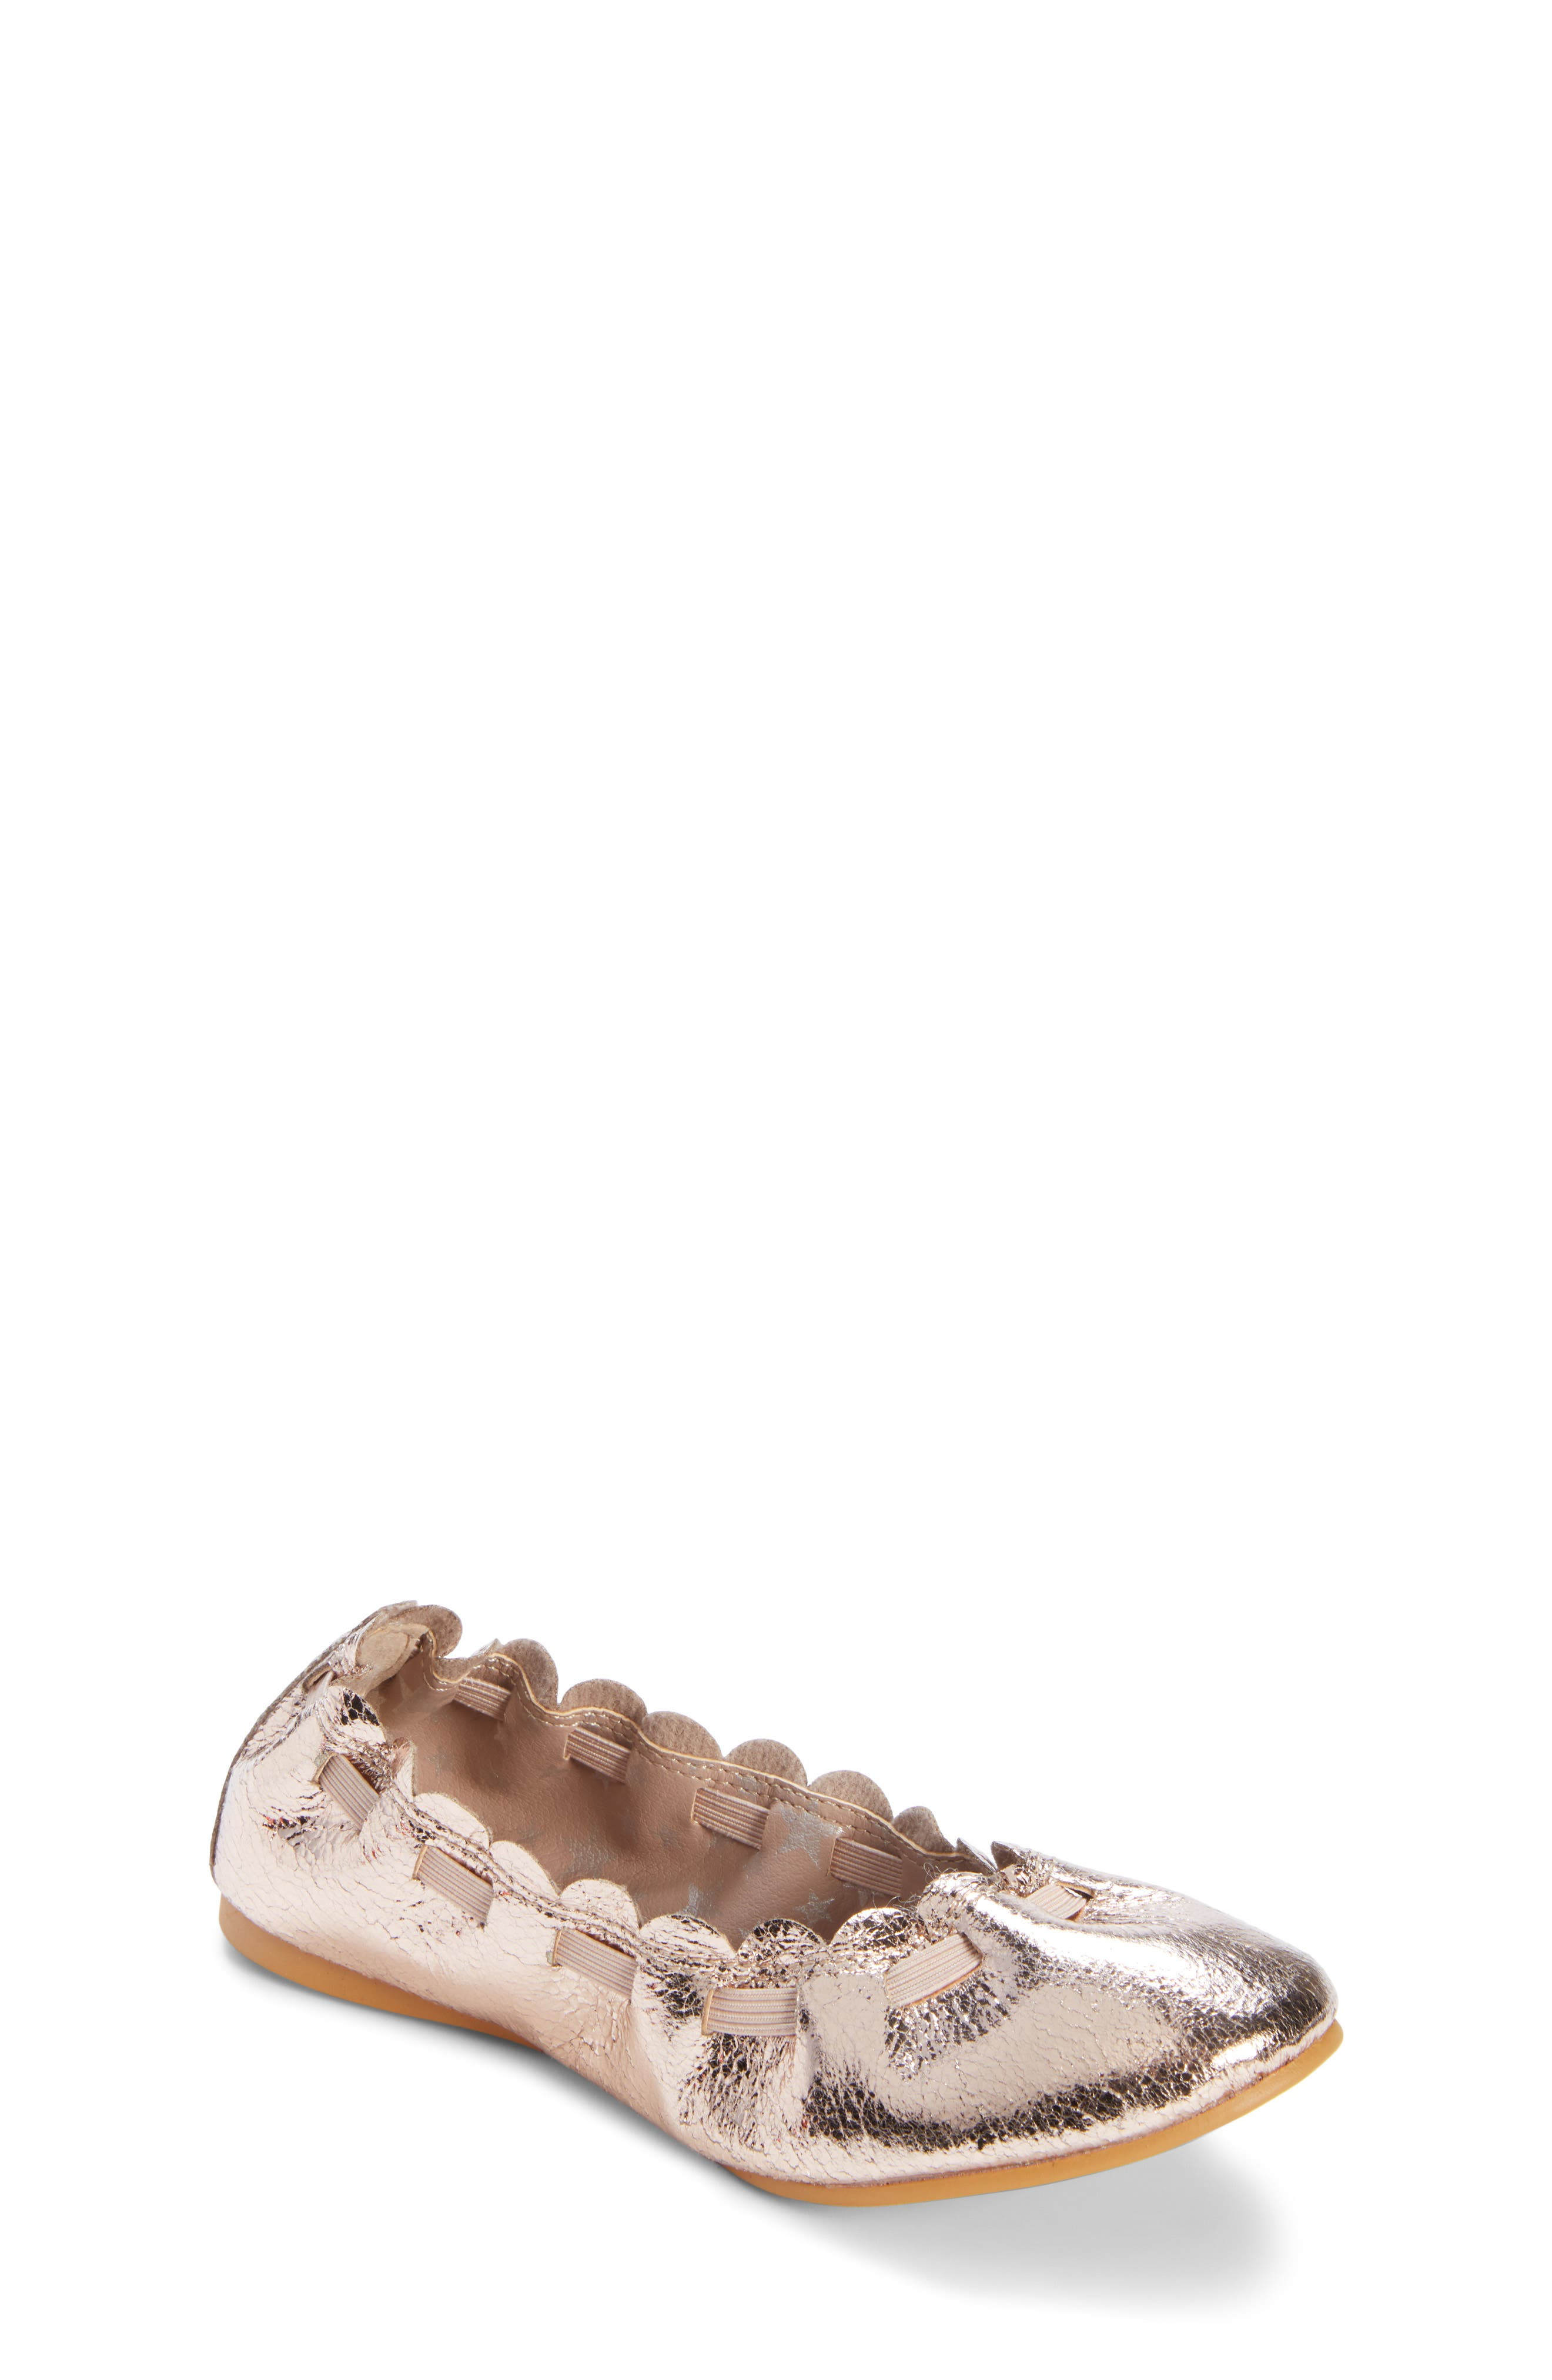 Scalloped Ballet Flat,                             Main thumbnail 1, color,                             ROSE GOLD CRACKLE FAUX LEATHER